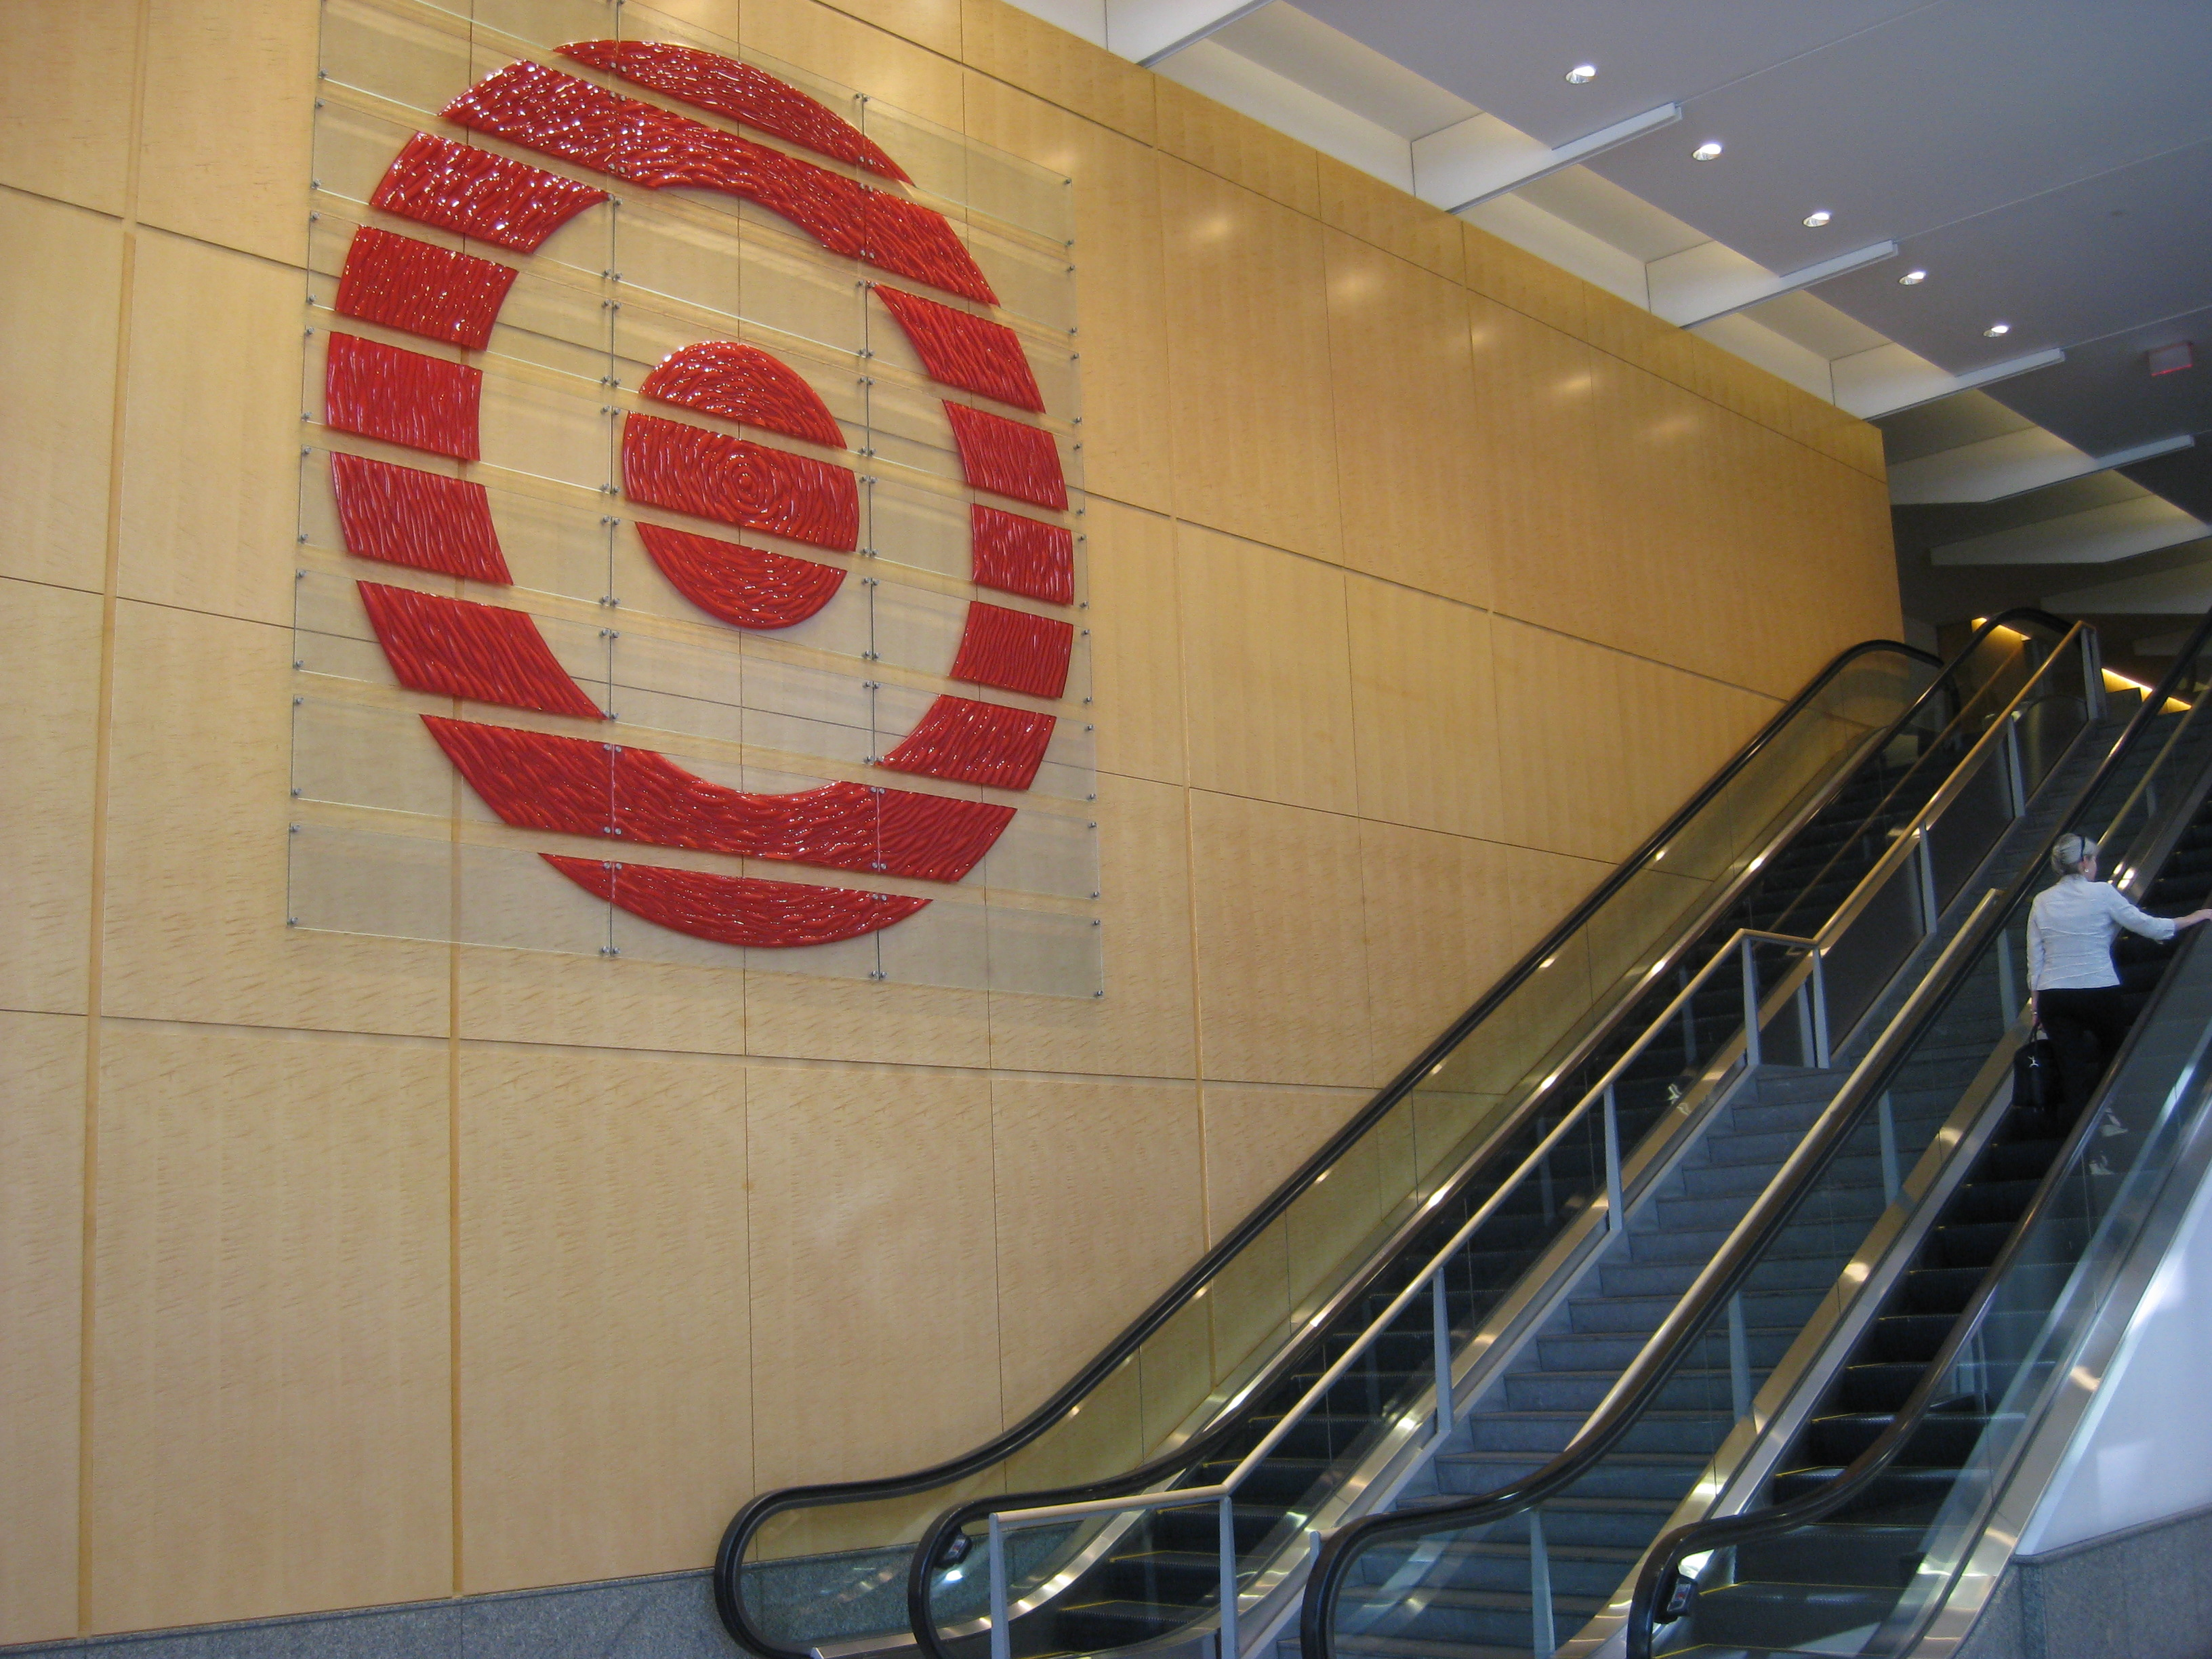 Target corporate office headquarters hq - Target Corporate Office Headquarters Hq 26